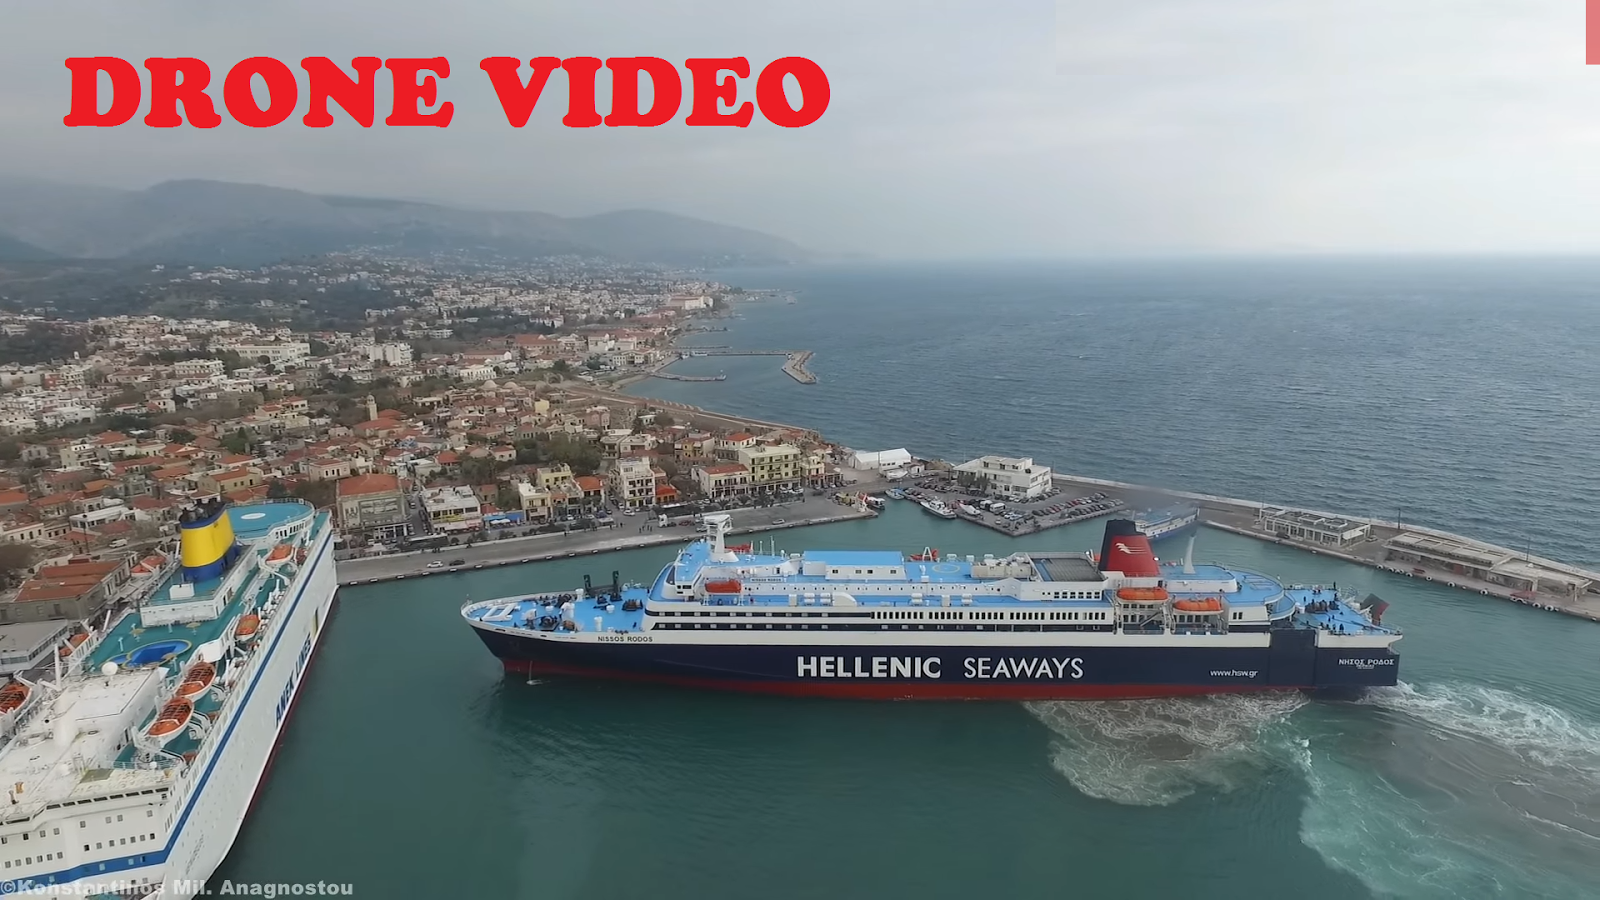 DRONE VIDEO: Mediterranean Mooring Done In Style